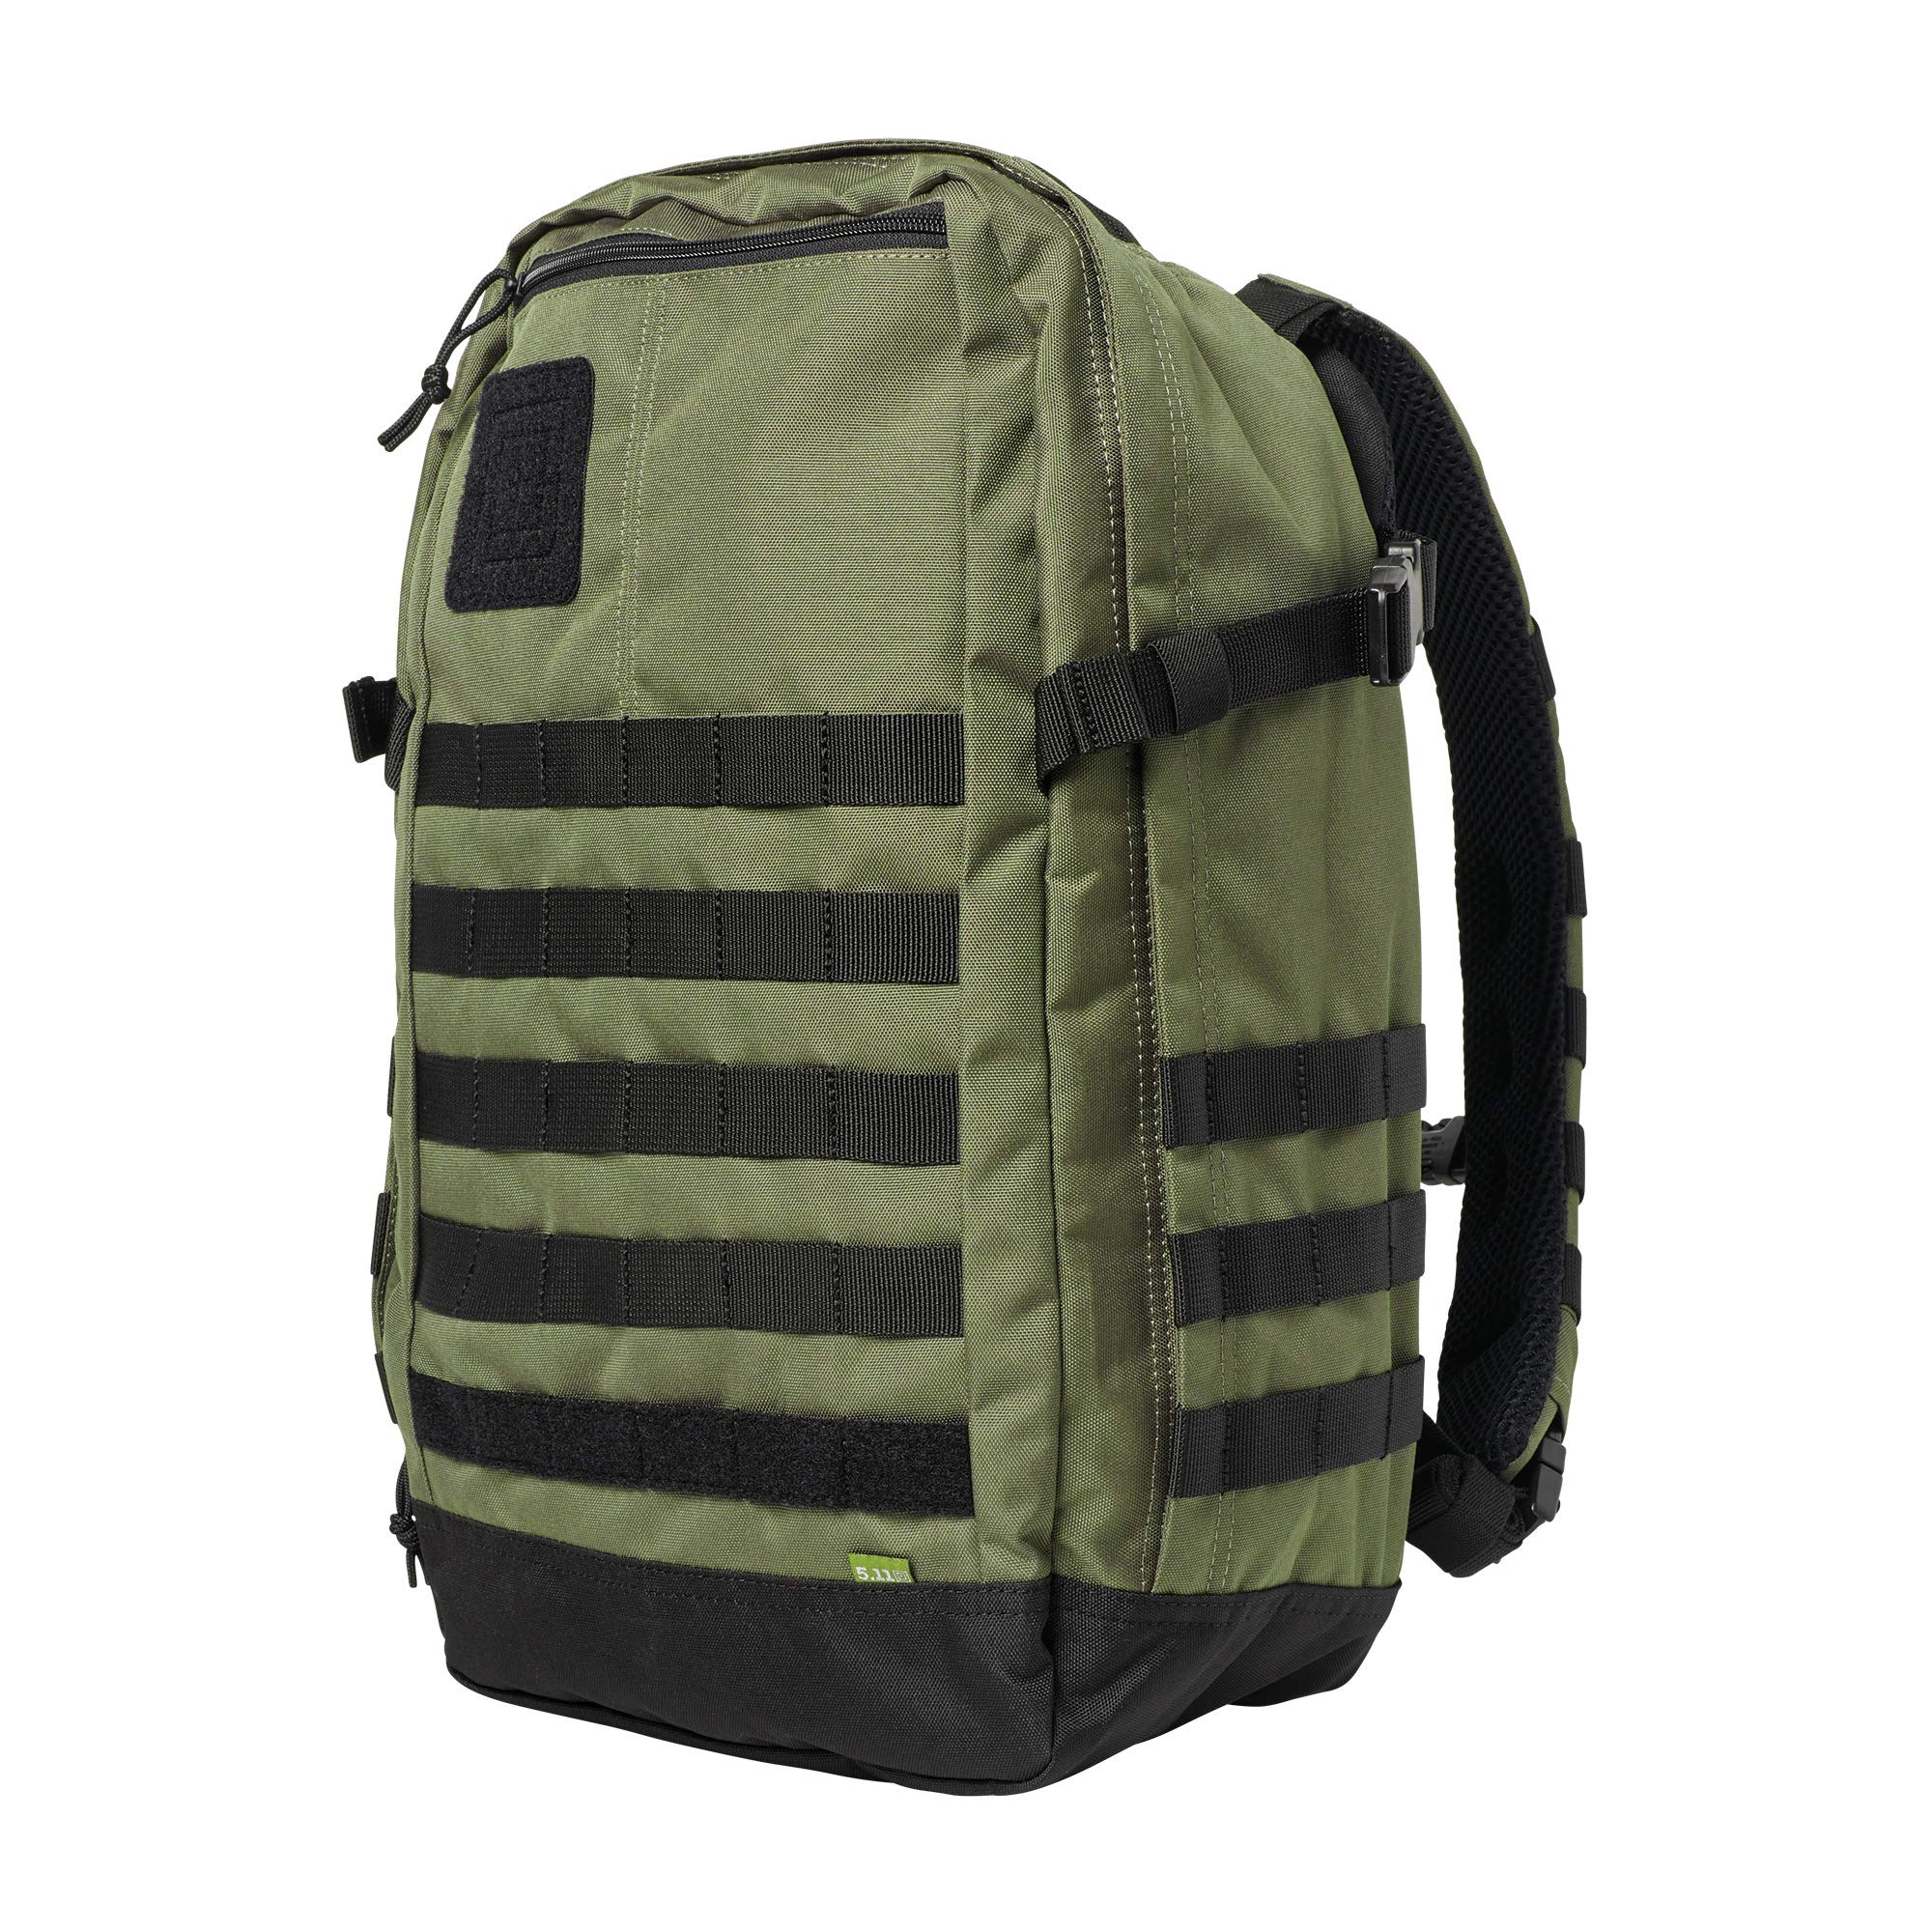 5.11 Style Rapid Origin Tactical Backpack, Style 56355, Ranger Green by 5.11